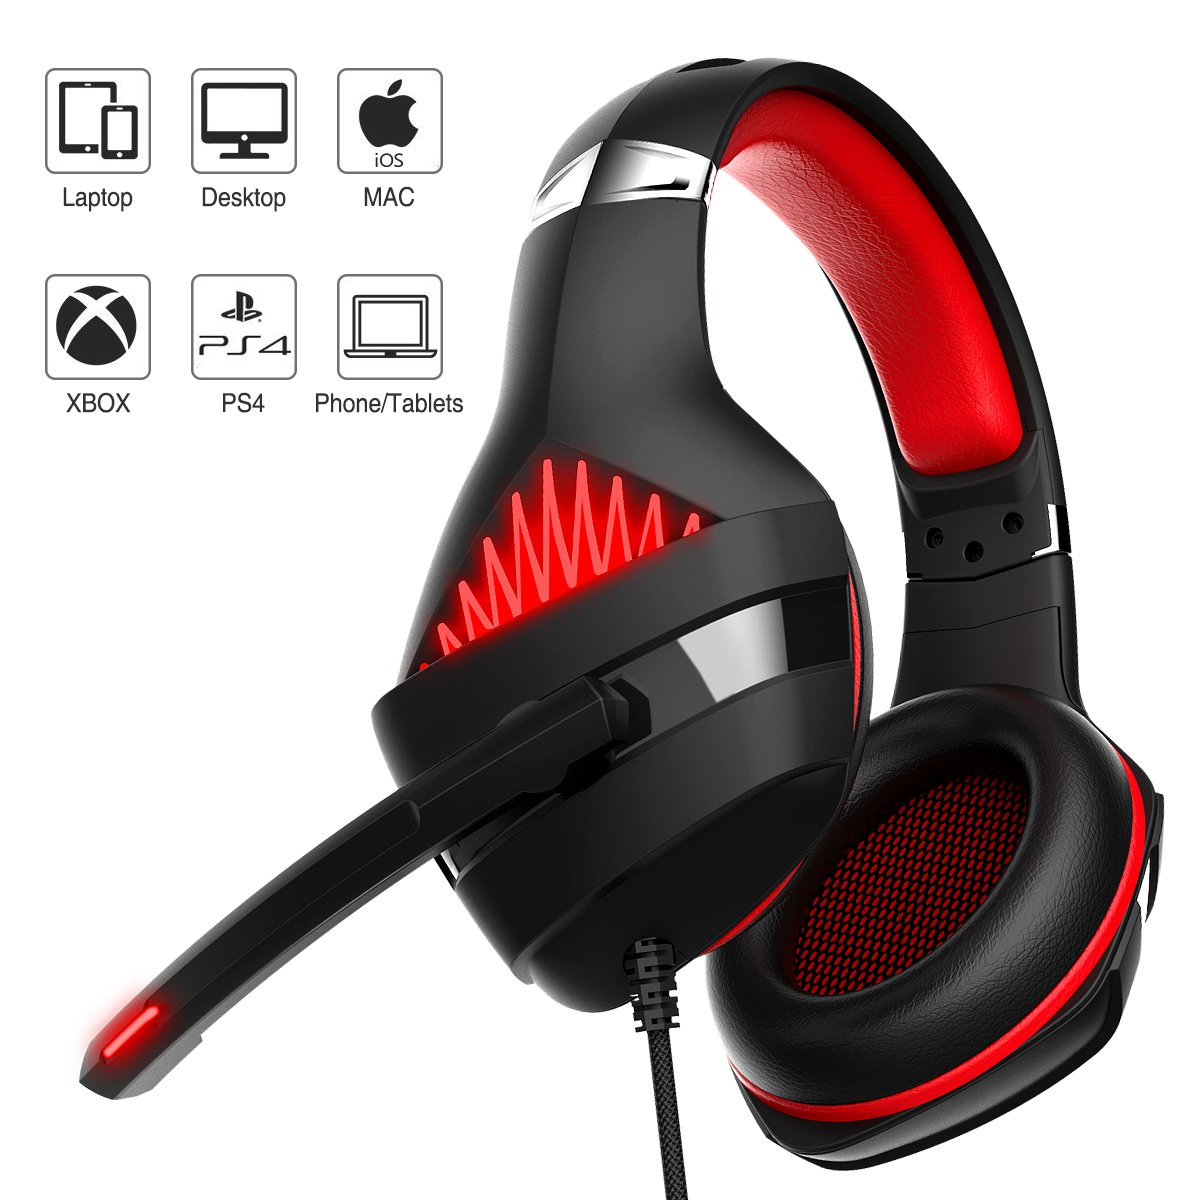 Gaming Headset, Beexcellent Gaming headphone with Microphone for PS4/Xbox One(Adapter Need)/Nintendo Switch(Audio)/PC/Controller/Cellphone-Easy Volume Control with LED Lighting 3.5MM Jack(GM-5 Red) by Beexcellent (Image #1)